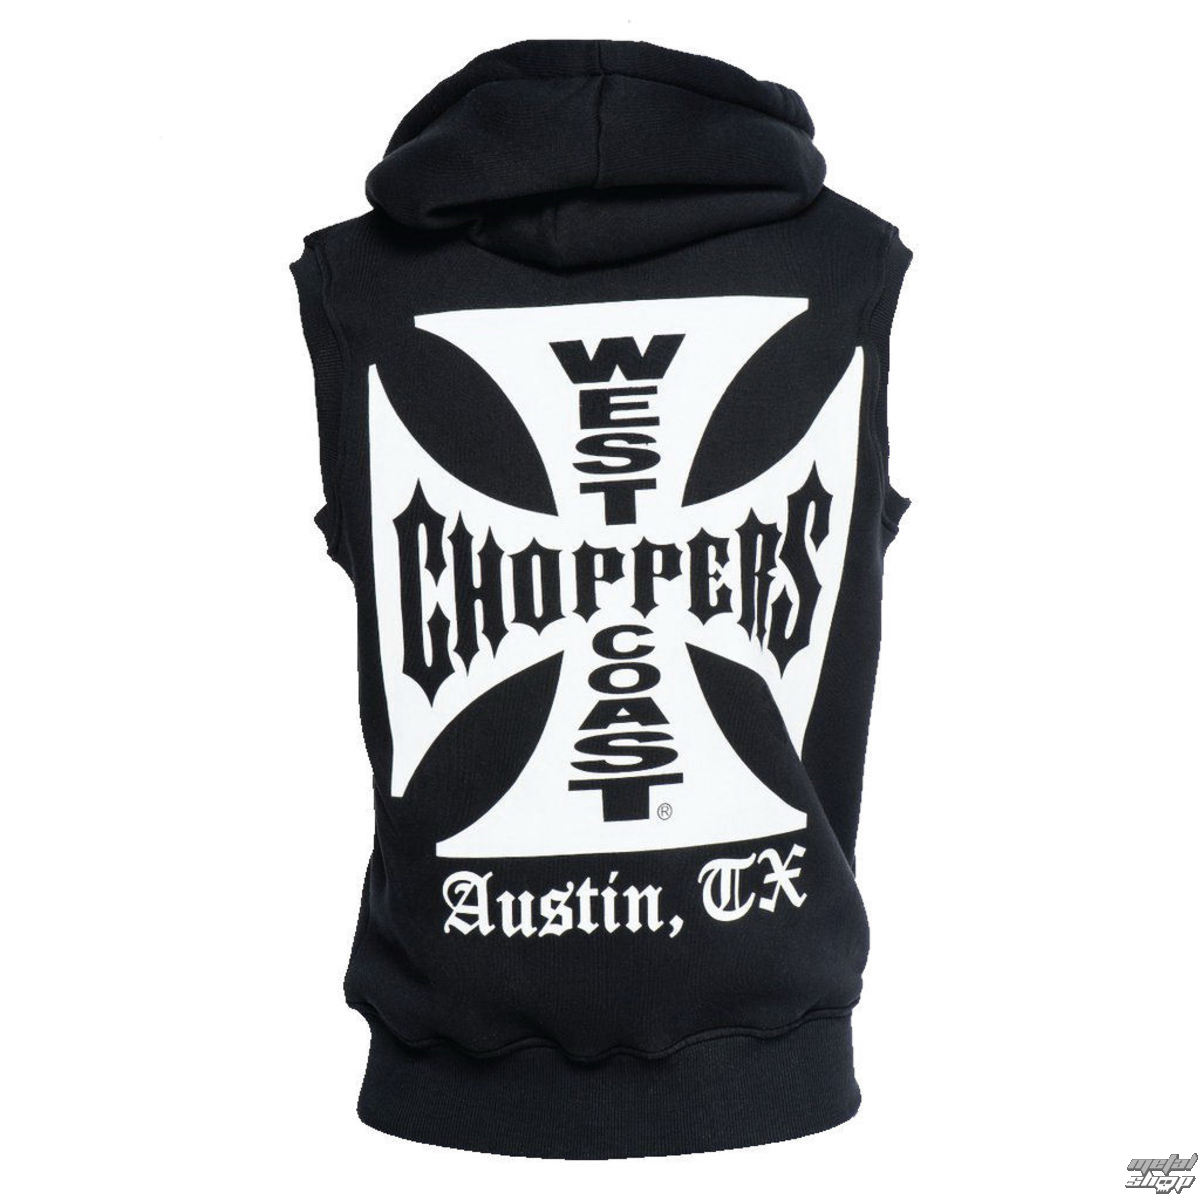 vesta West Coast Choppers IRON CROSS SLEEVELESS HOODY XXL